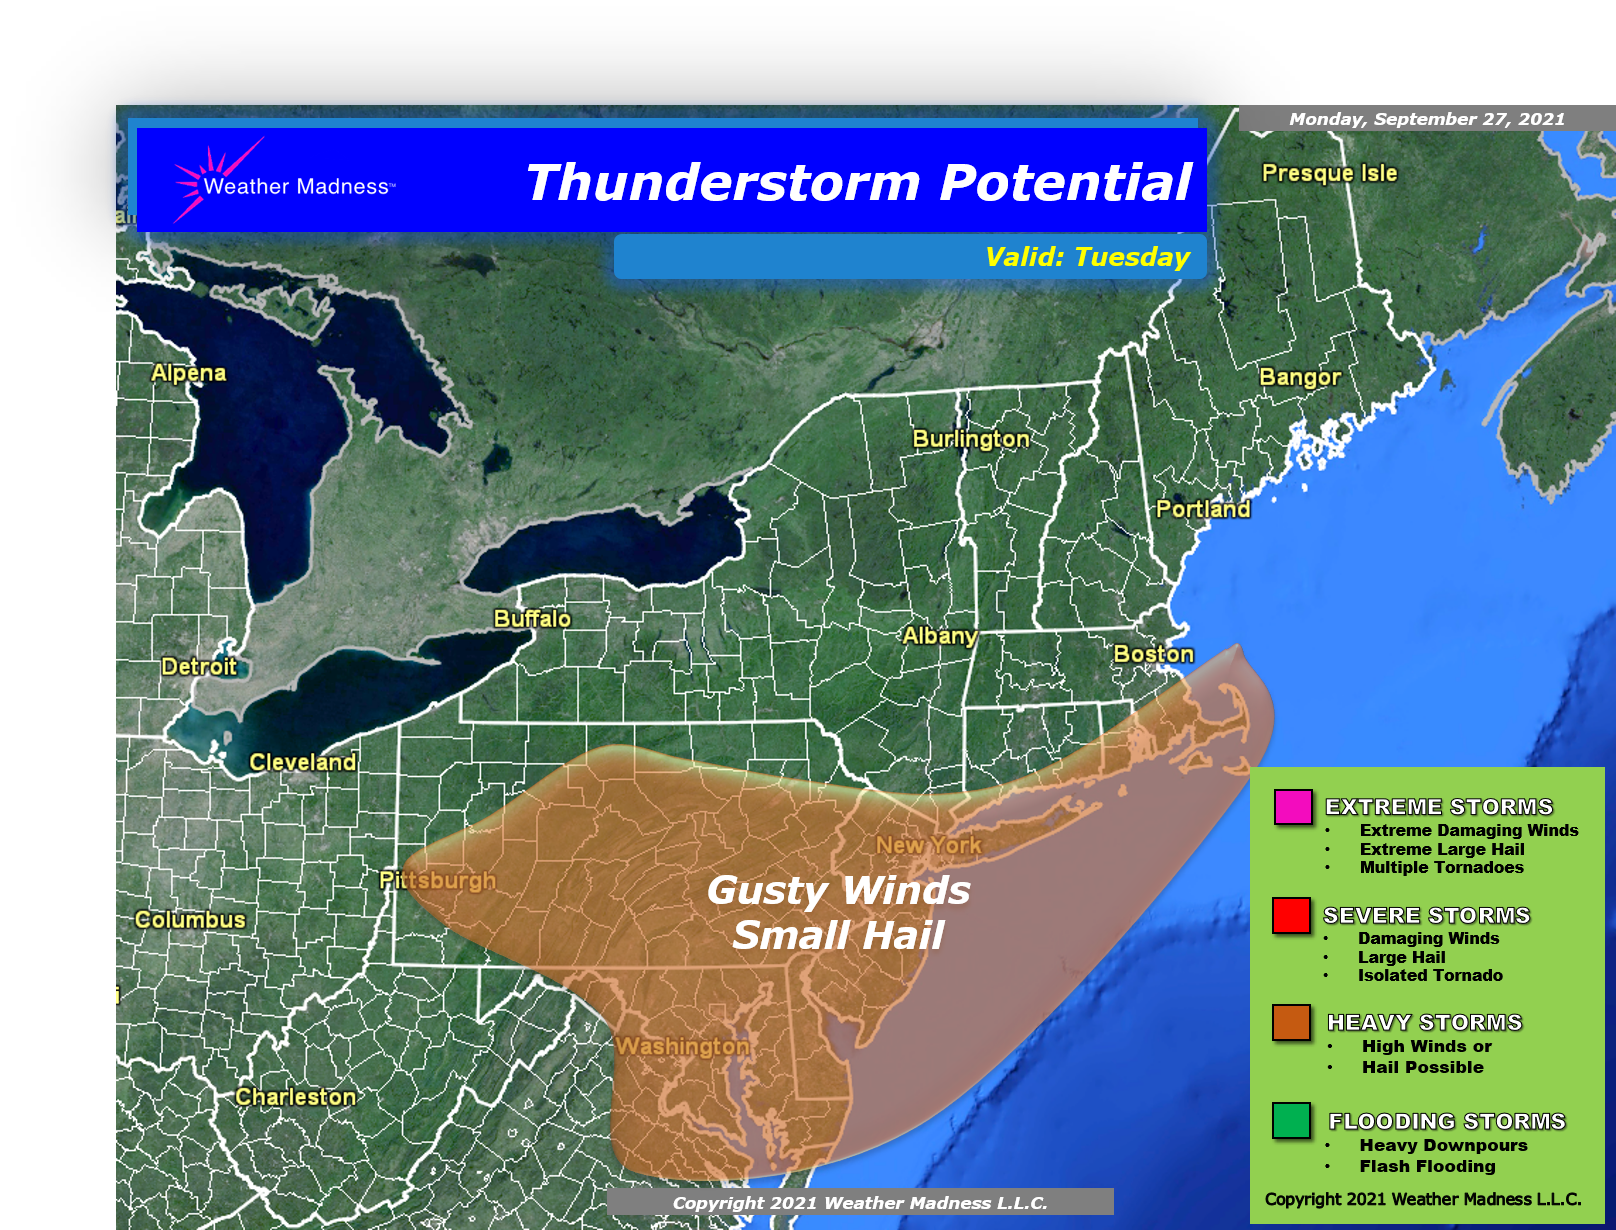 Heavy Thunderstorms May Bring Gusty Winds and Small Hail Tuesday